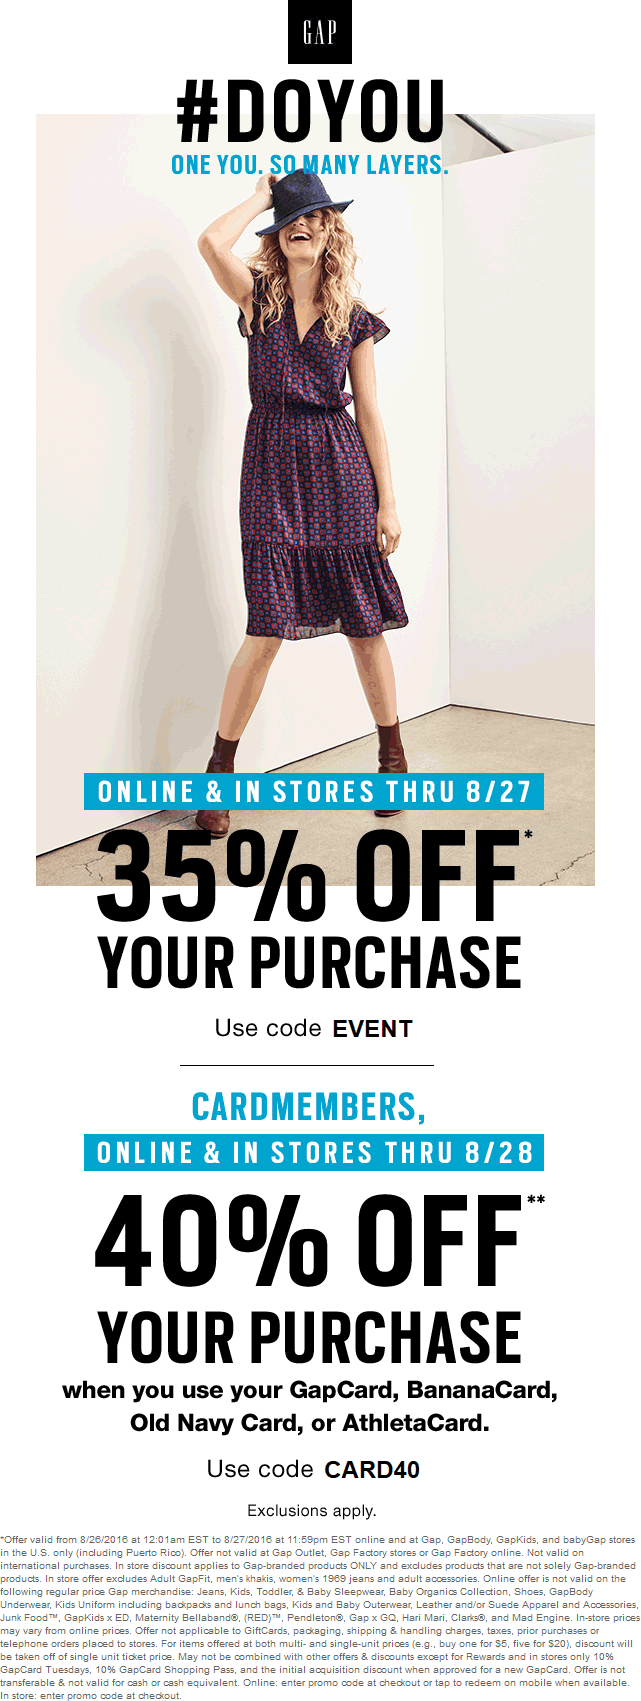 Gap Coupon April 2018 35% off today at Gap, or online via promo code EVENT